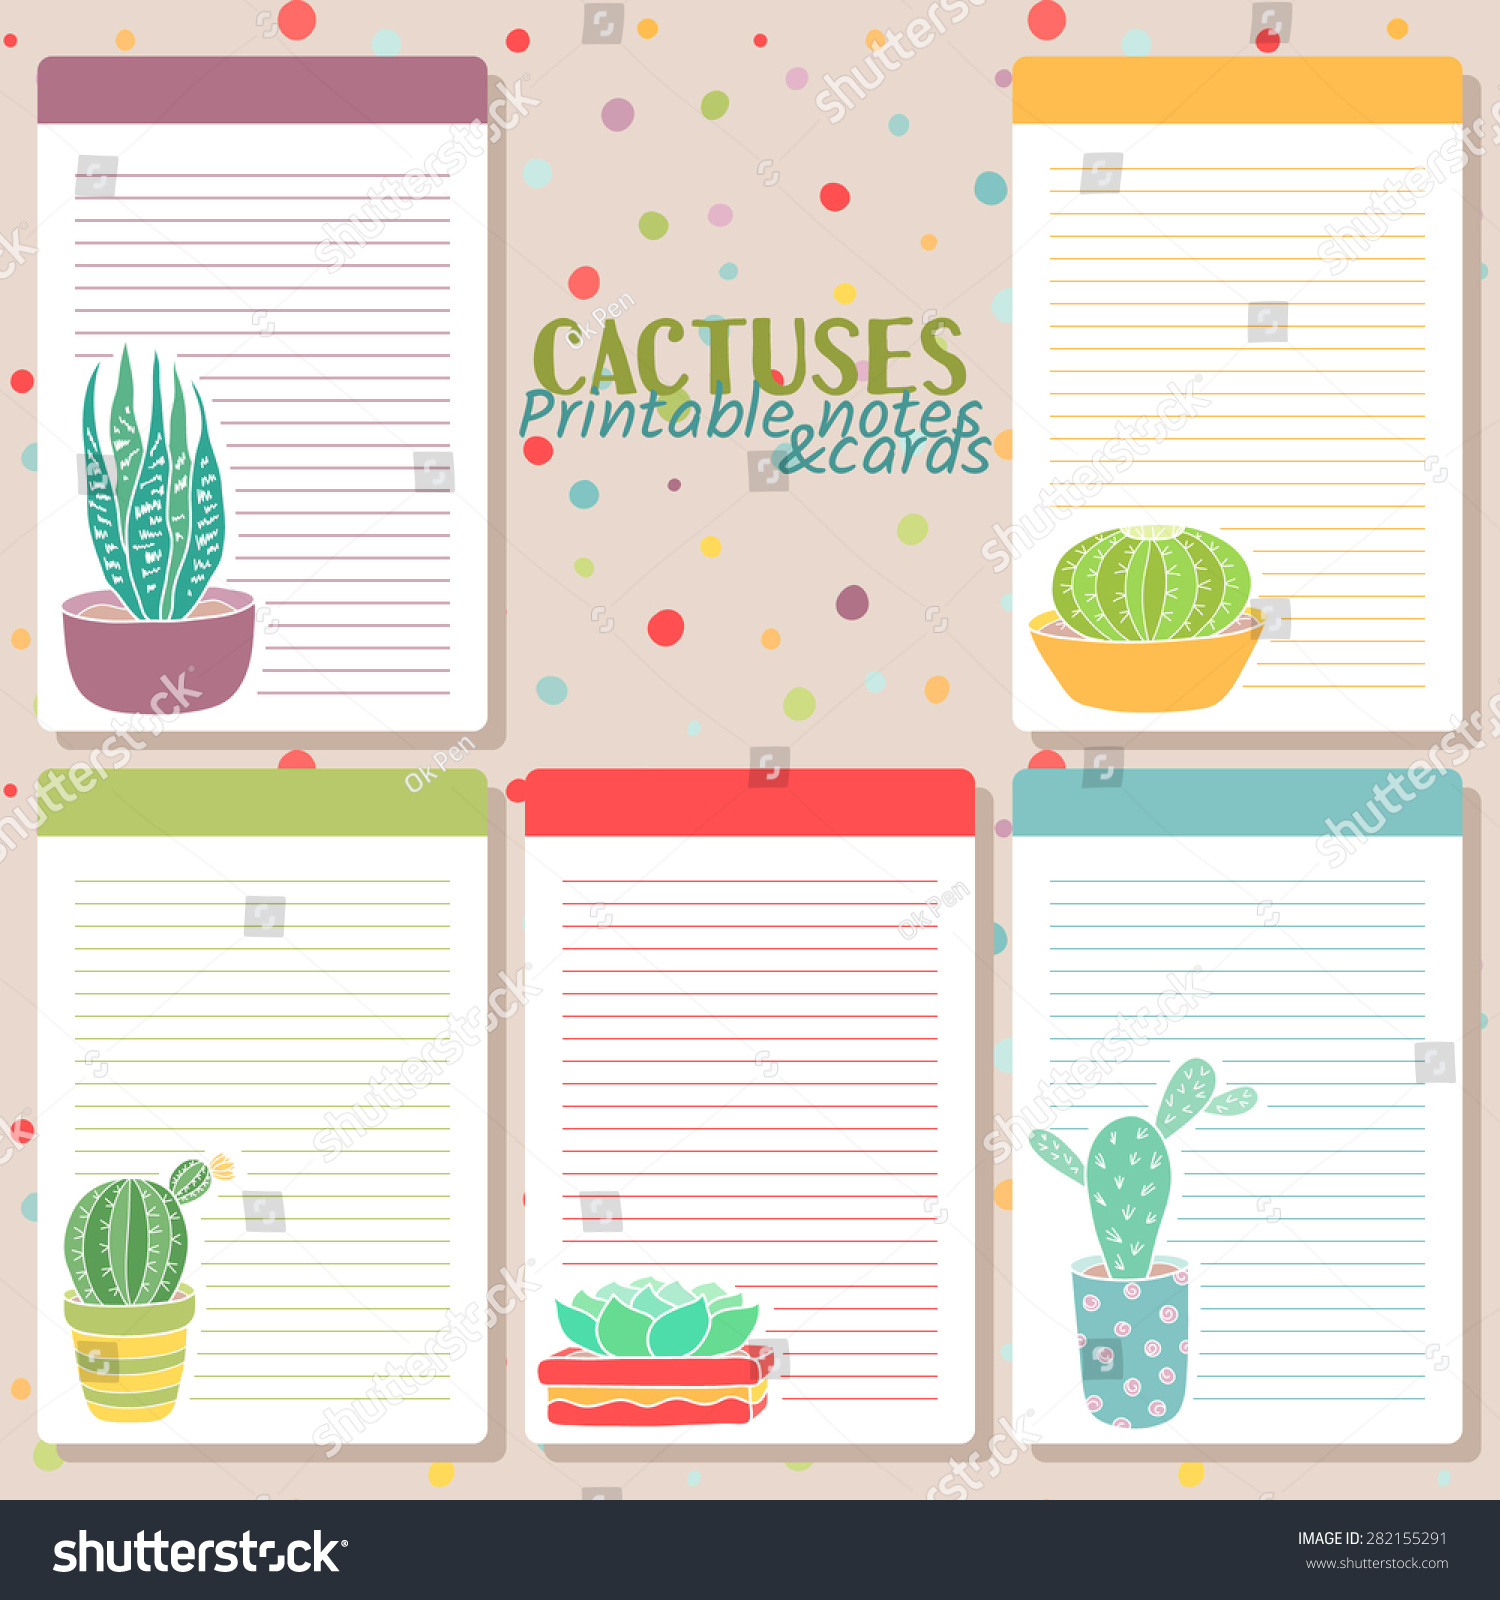 Printable Note Cards Vector Set Five Cute Templates Cactuses Stock Vector 282155291